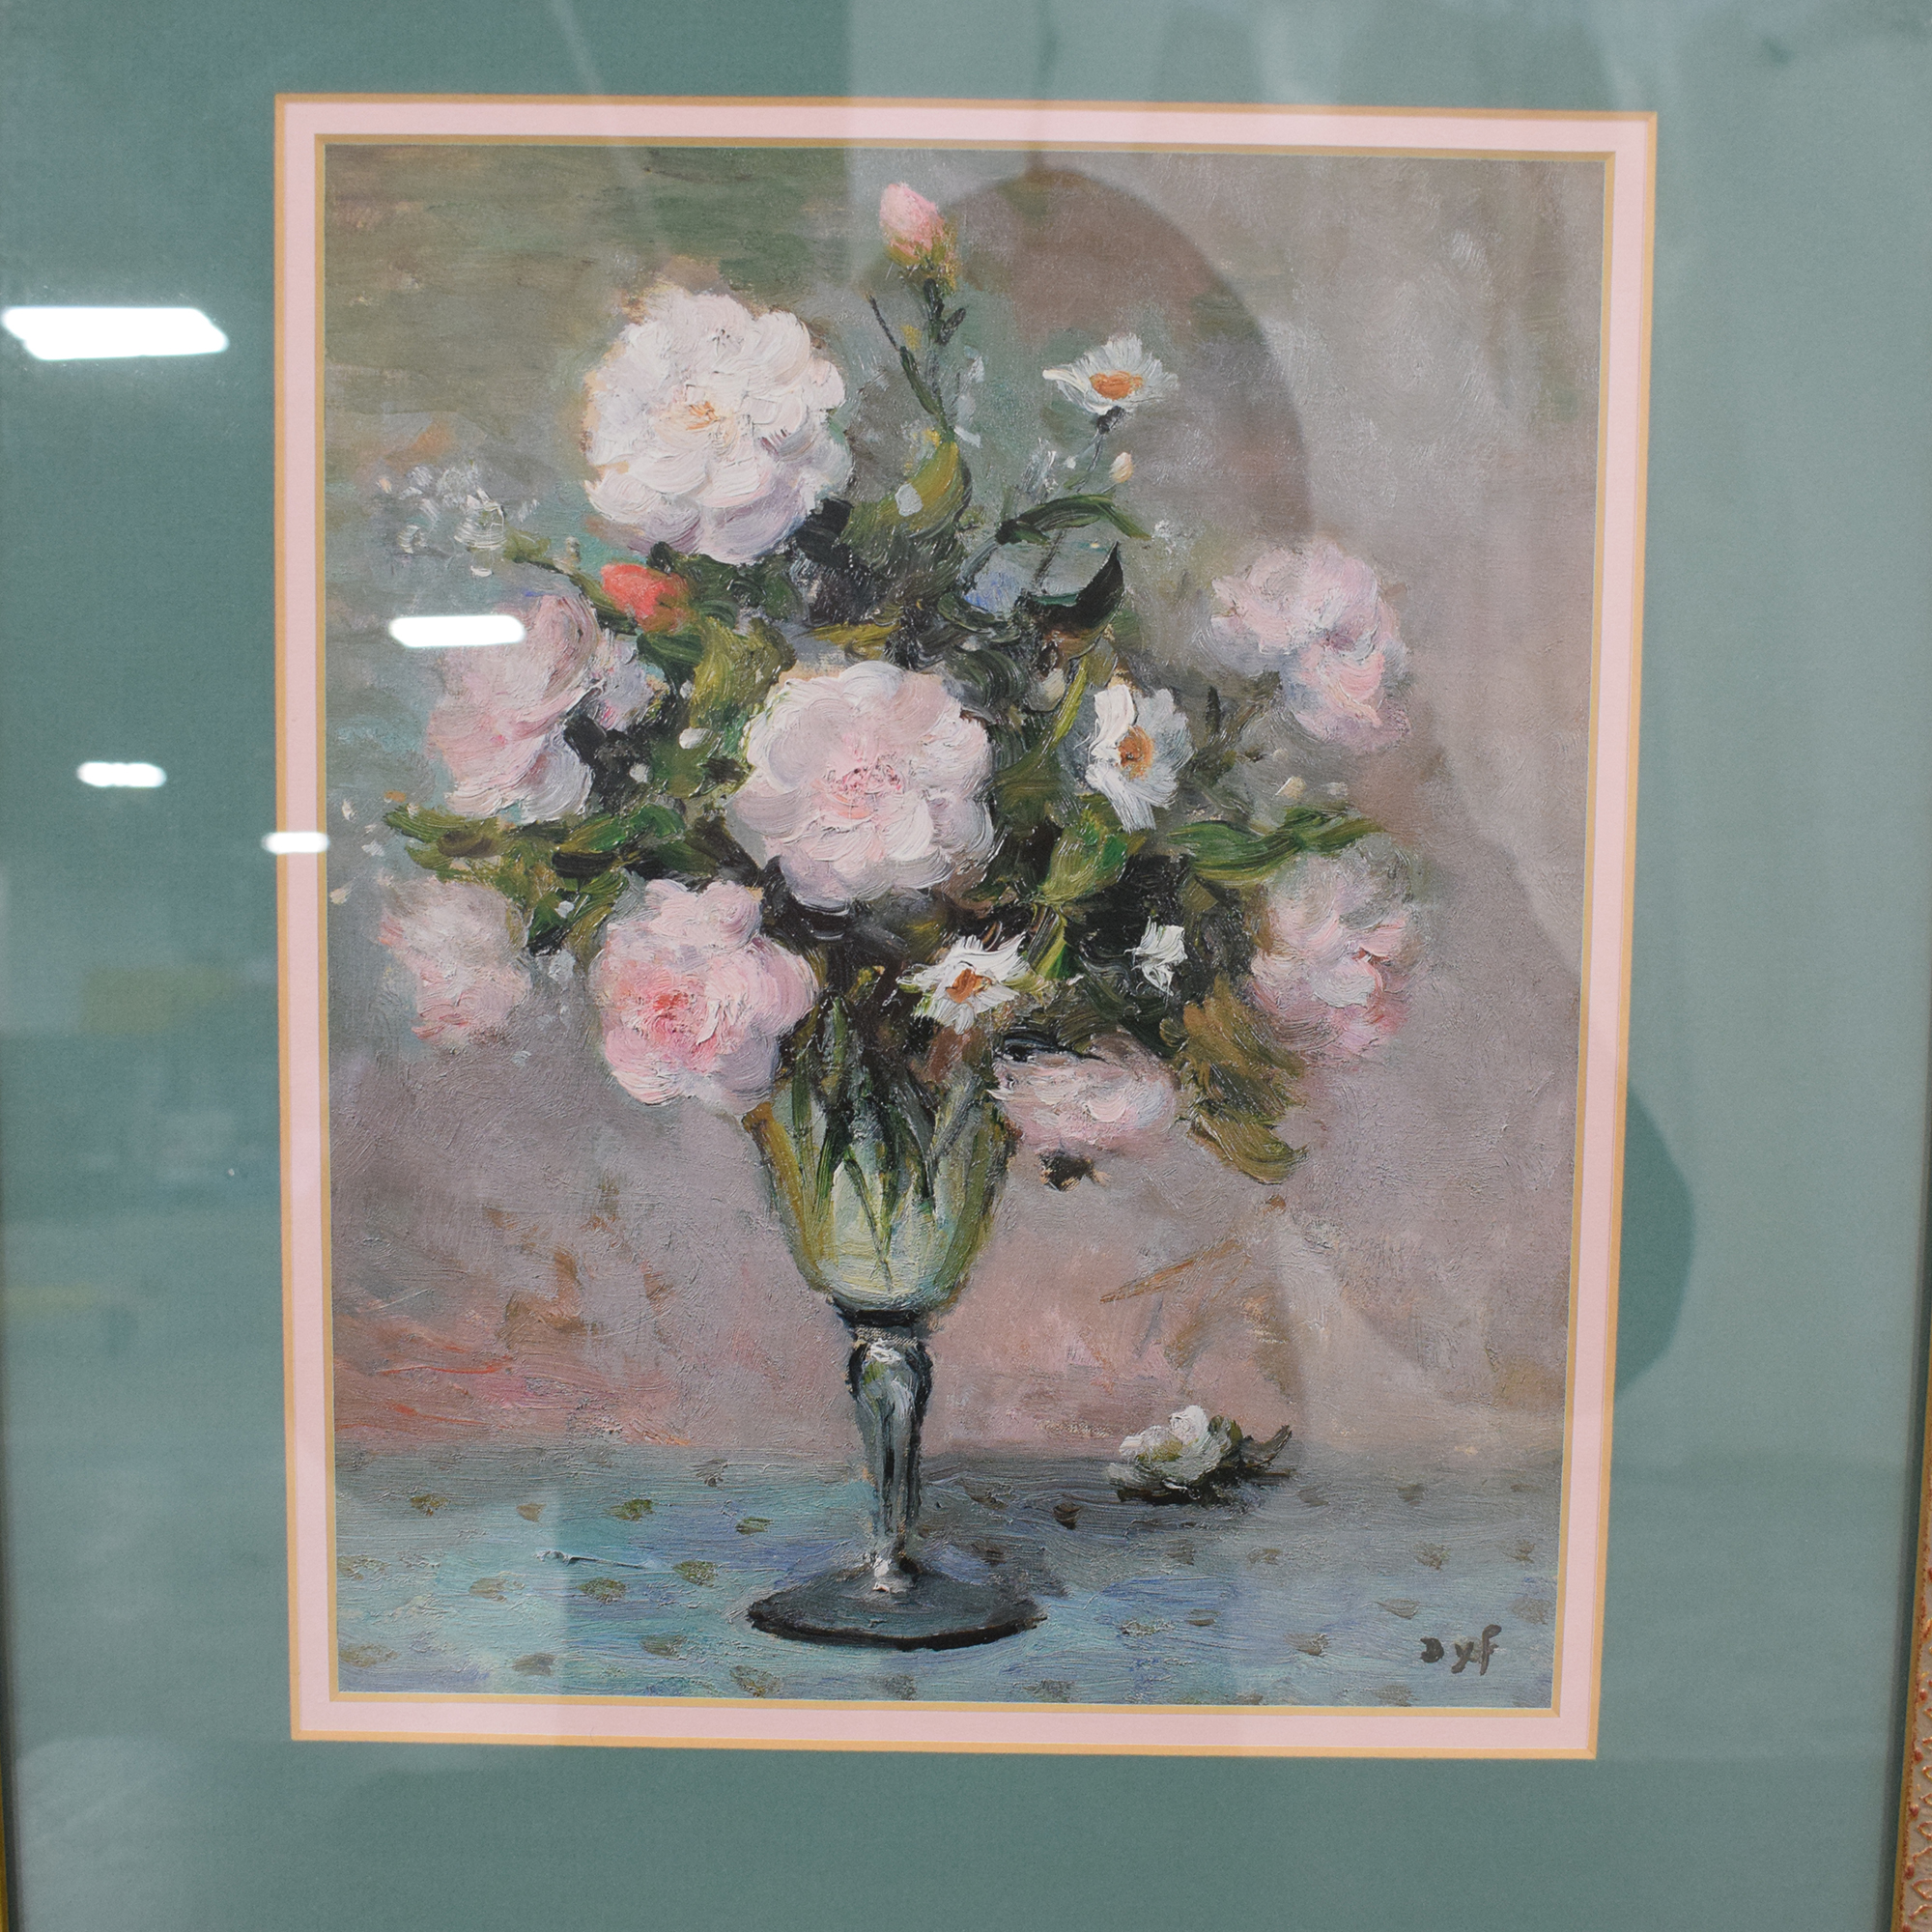 Framed Floral Wall Art coupon